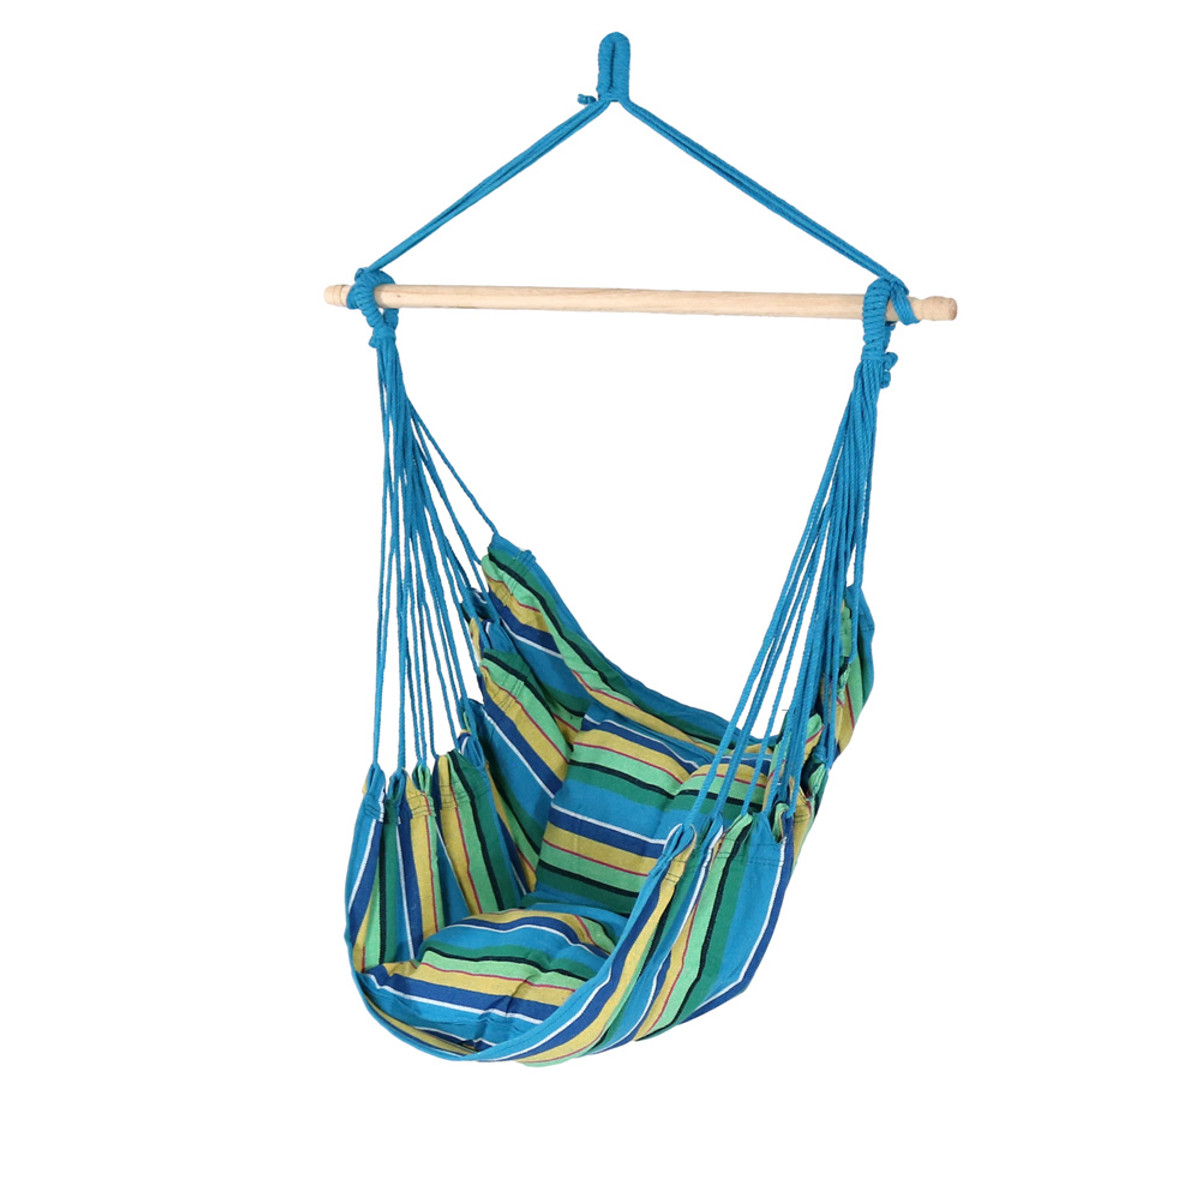 Sunnydaze Hanging Hammock Chair Swing For Indoor Or Outdoor Use Max Weight 265 Pounds Includes 2 Seat Cushions